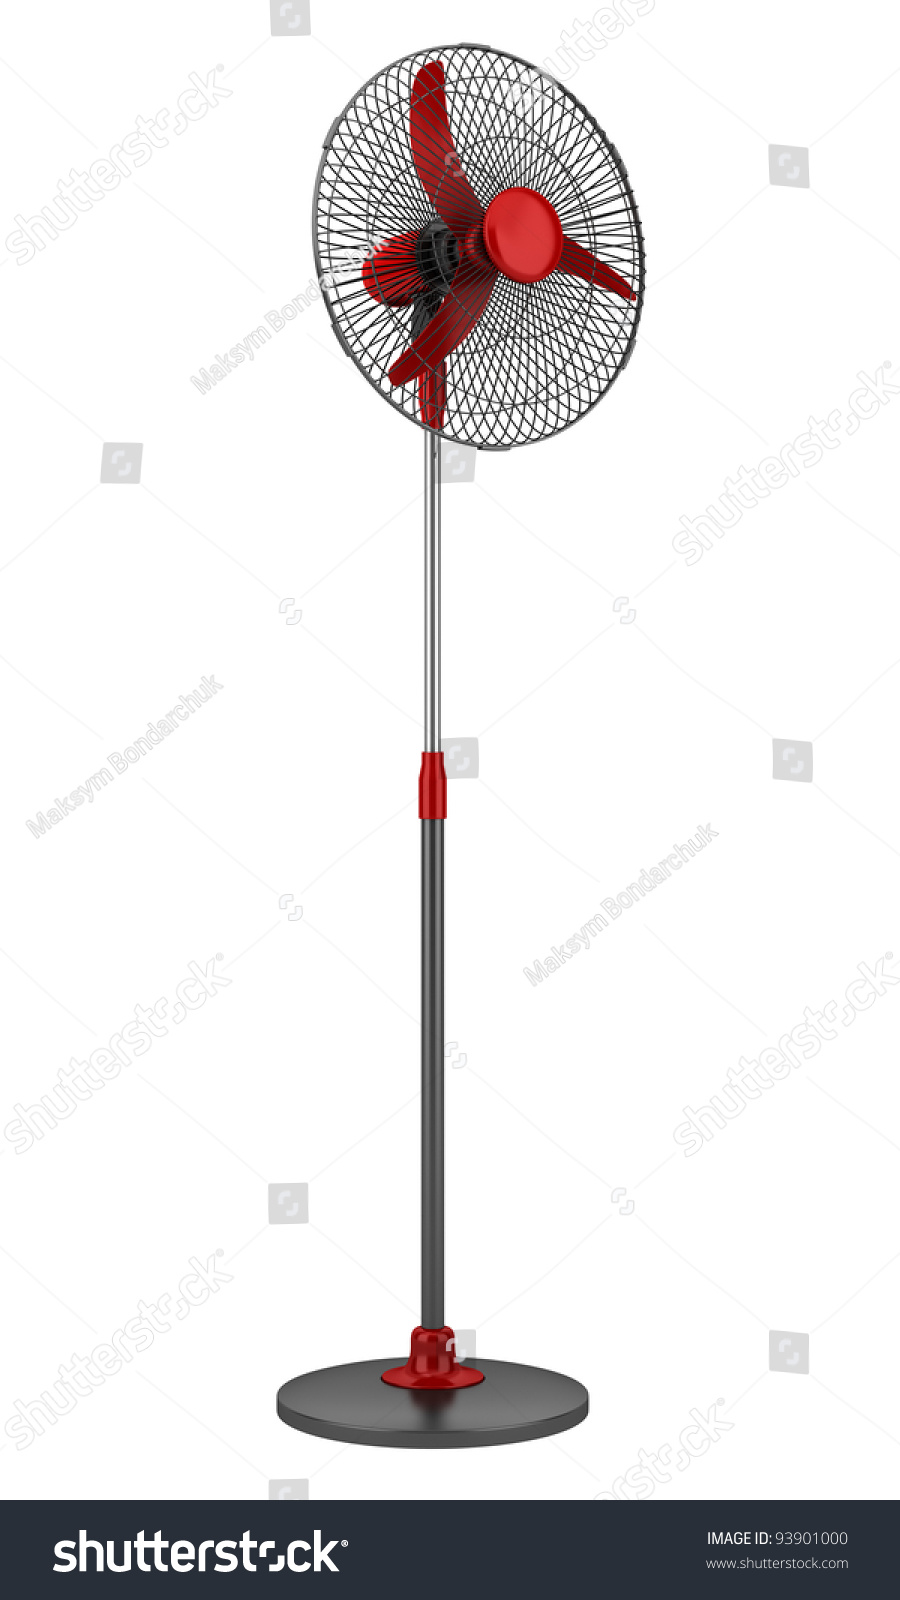 modern electric black red floor fan stock illustration   - modern electric black and red floor fan isolated on white background